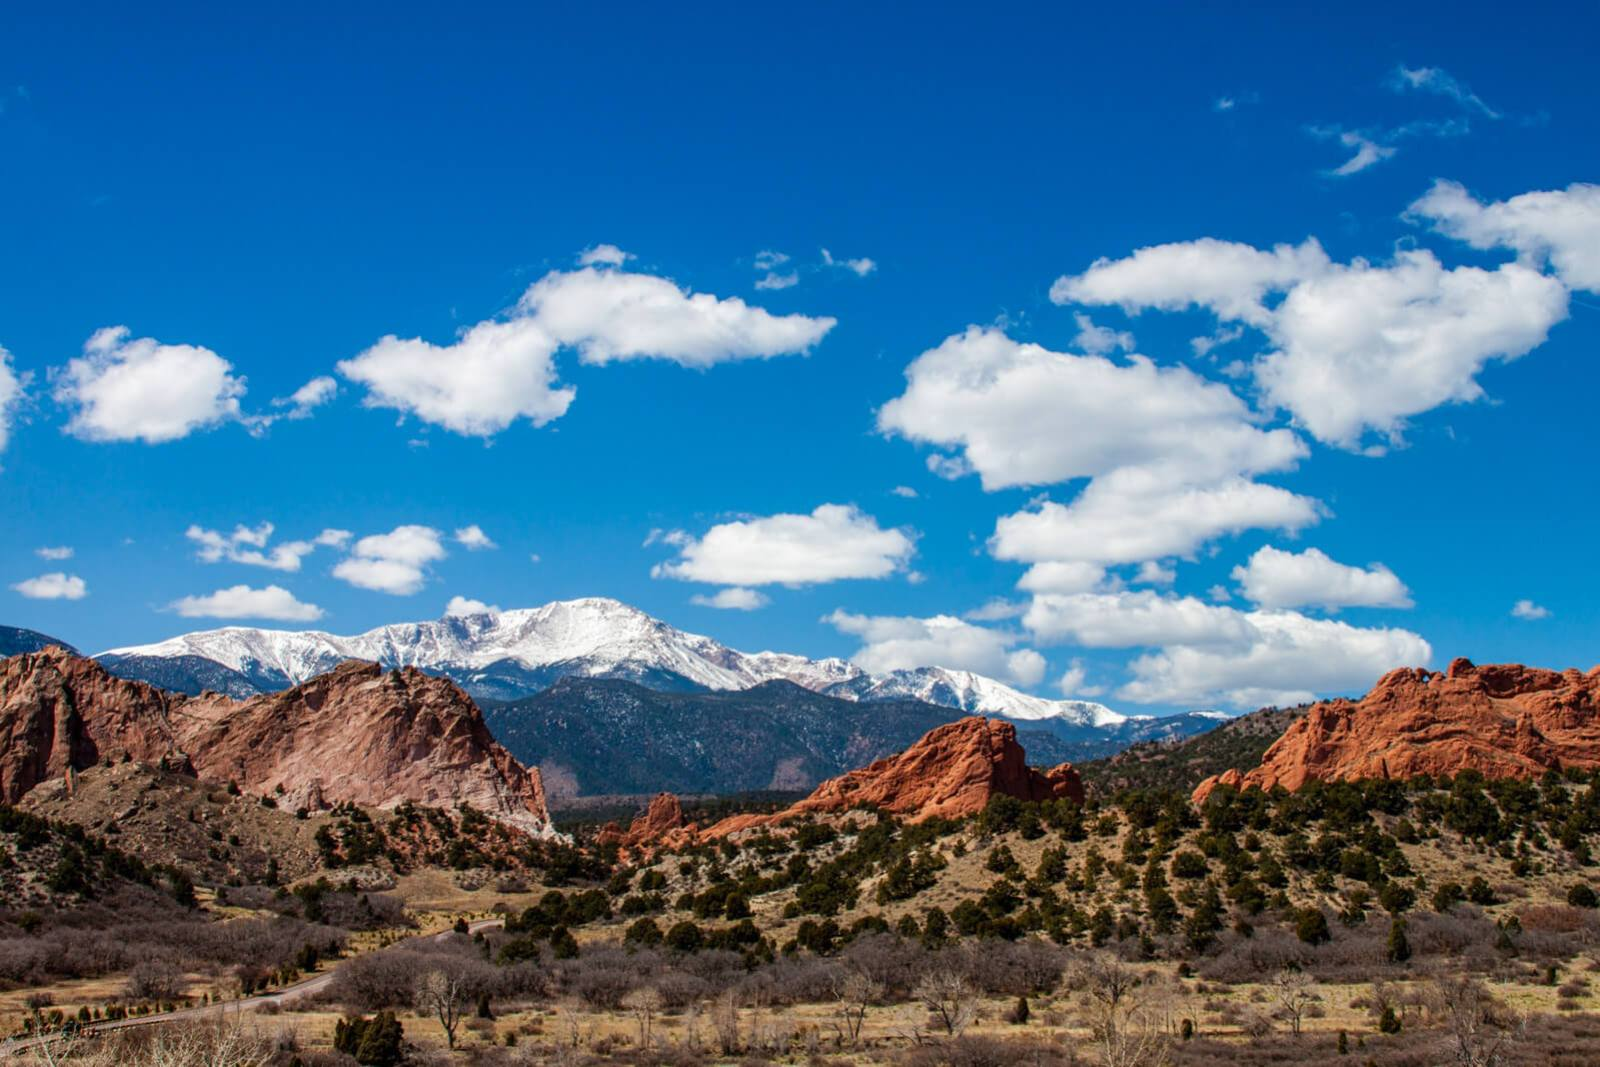 Winter view of Pikes Peak from the Garden Of The Gods Visitors Center in Colorado Springs, Colorado, United States